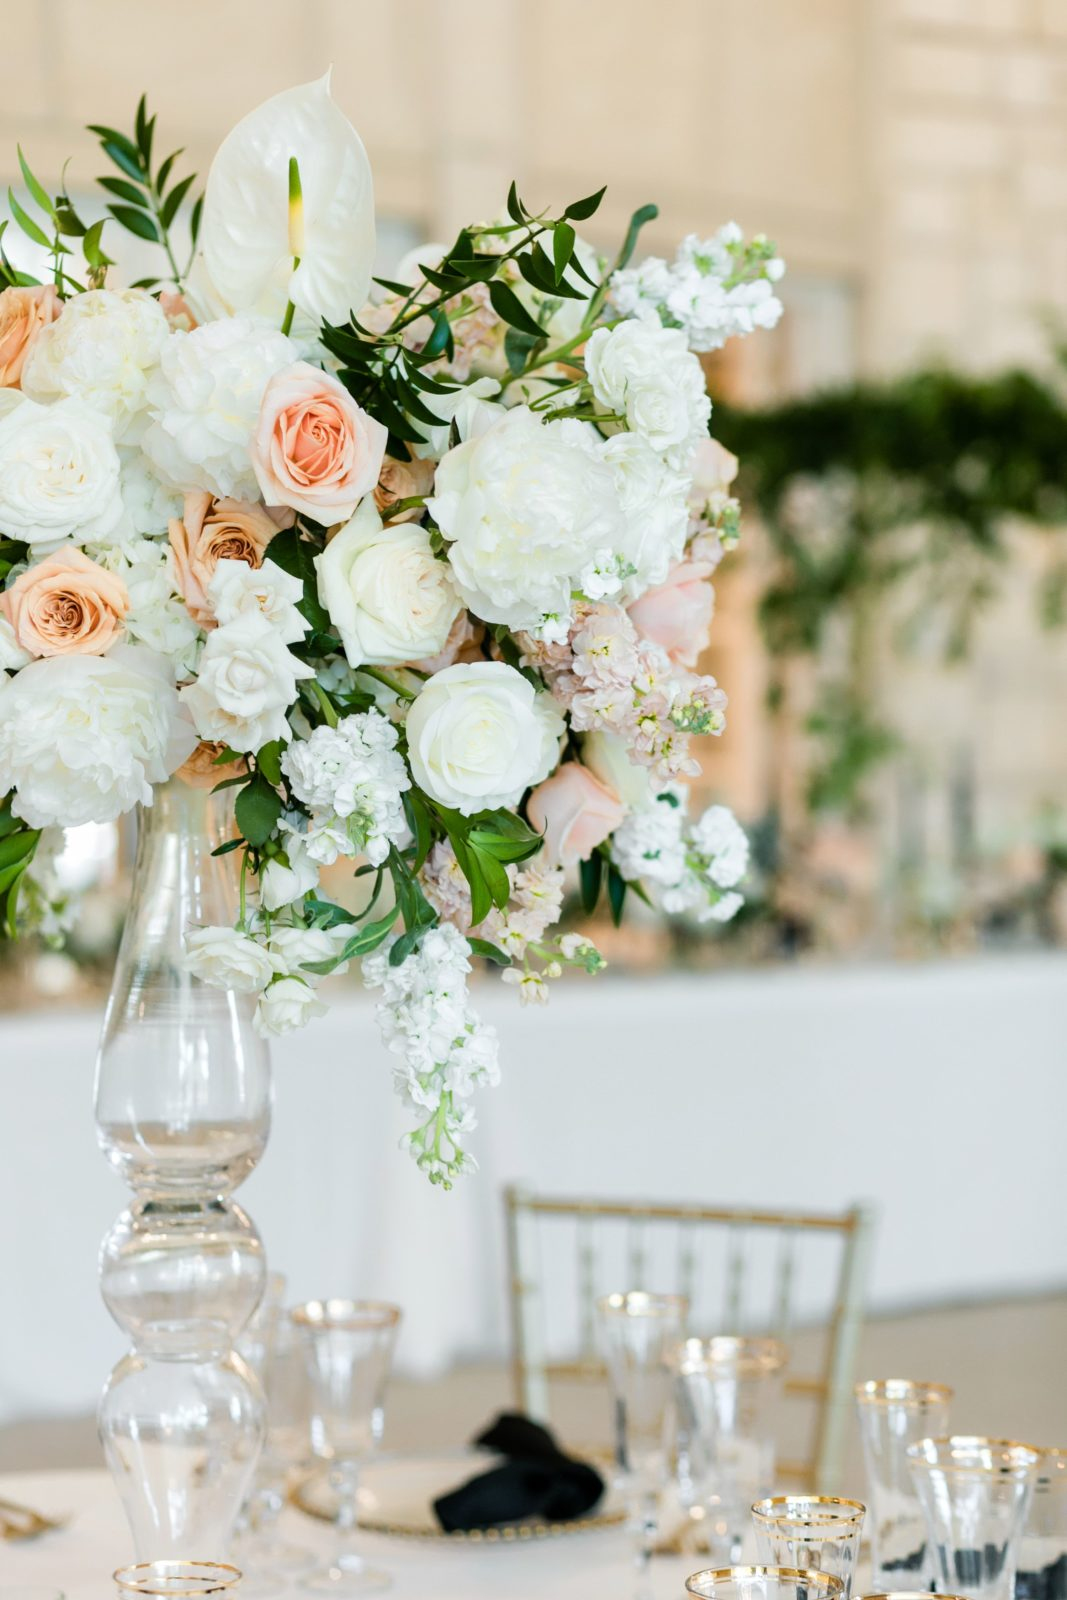 Peach and white wedding centerpieces: Sophisticated and Chic wedding inspiration on Alexa Kay Events